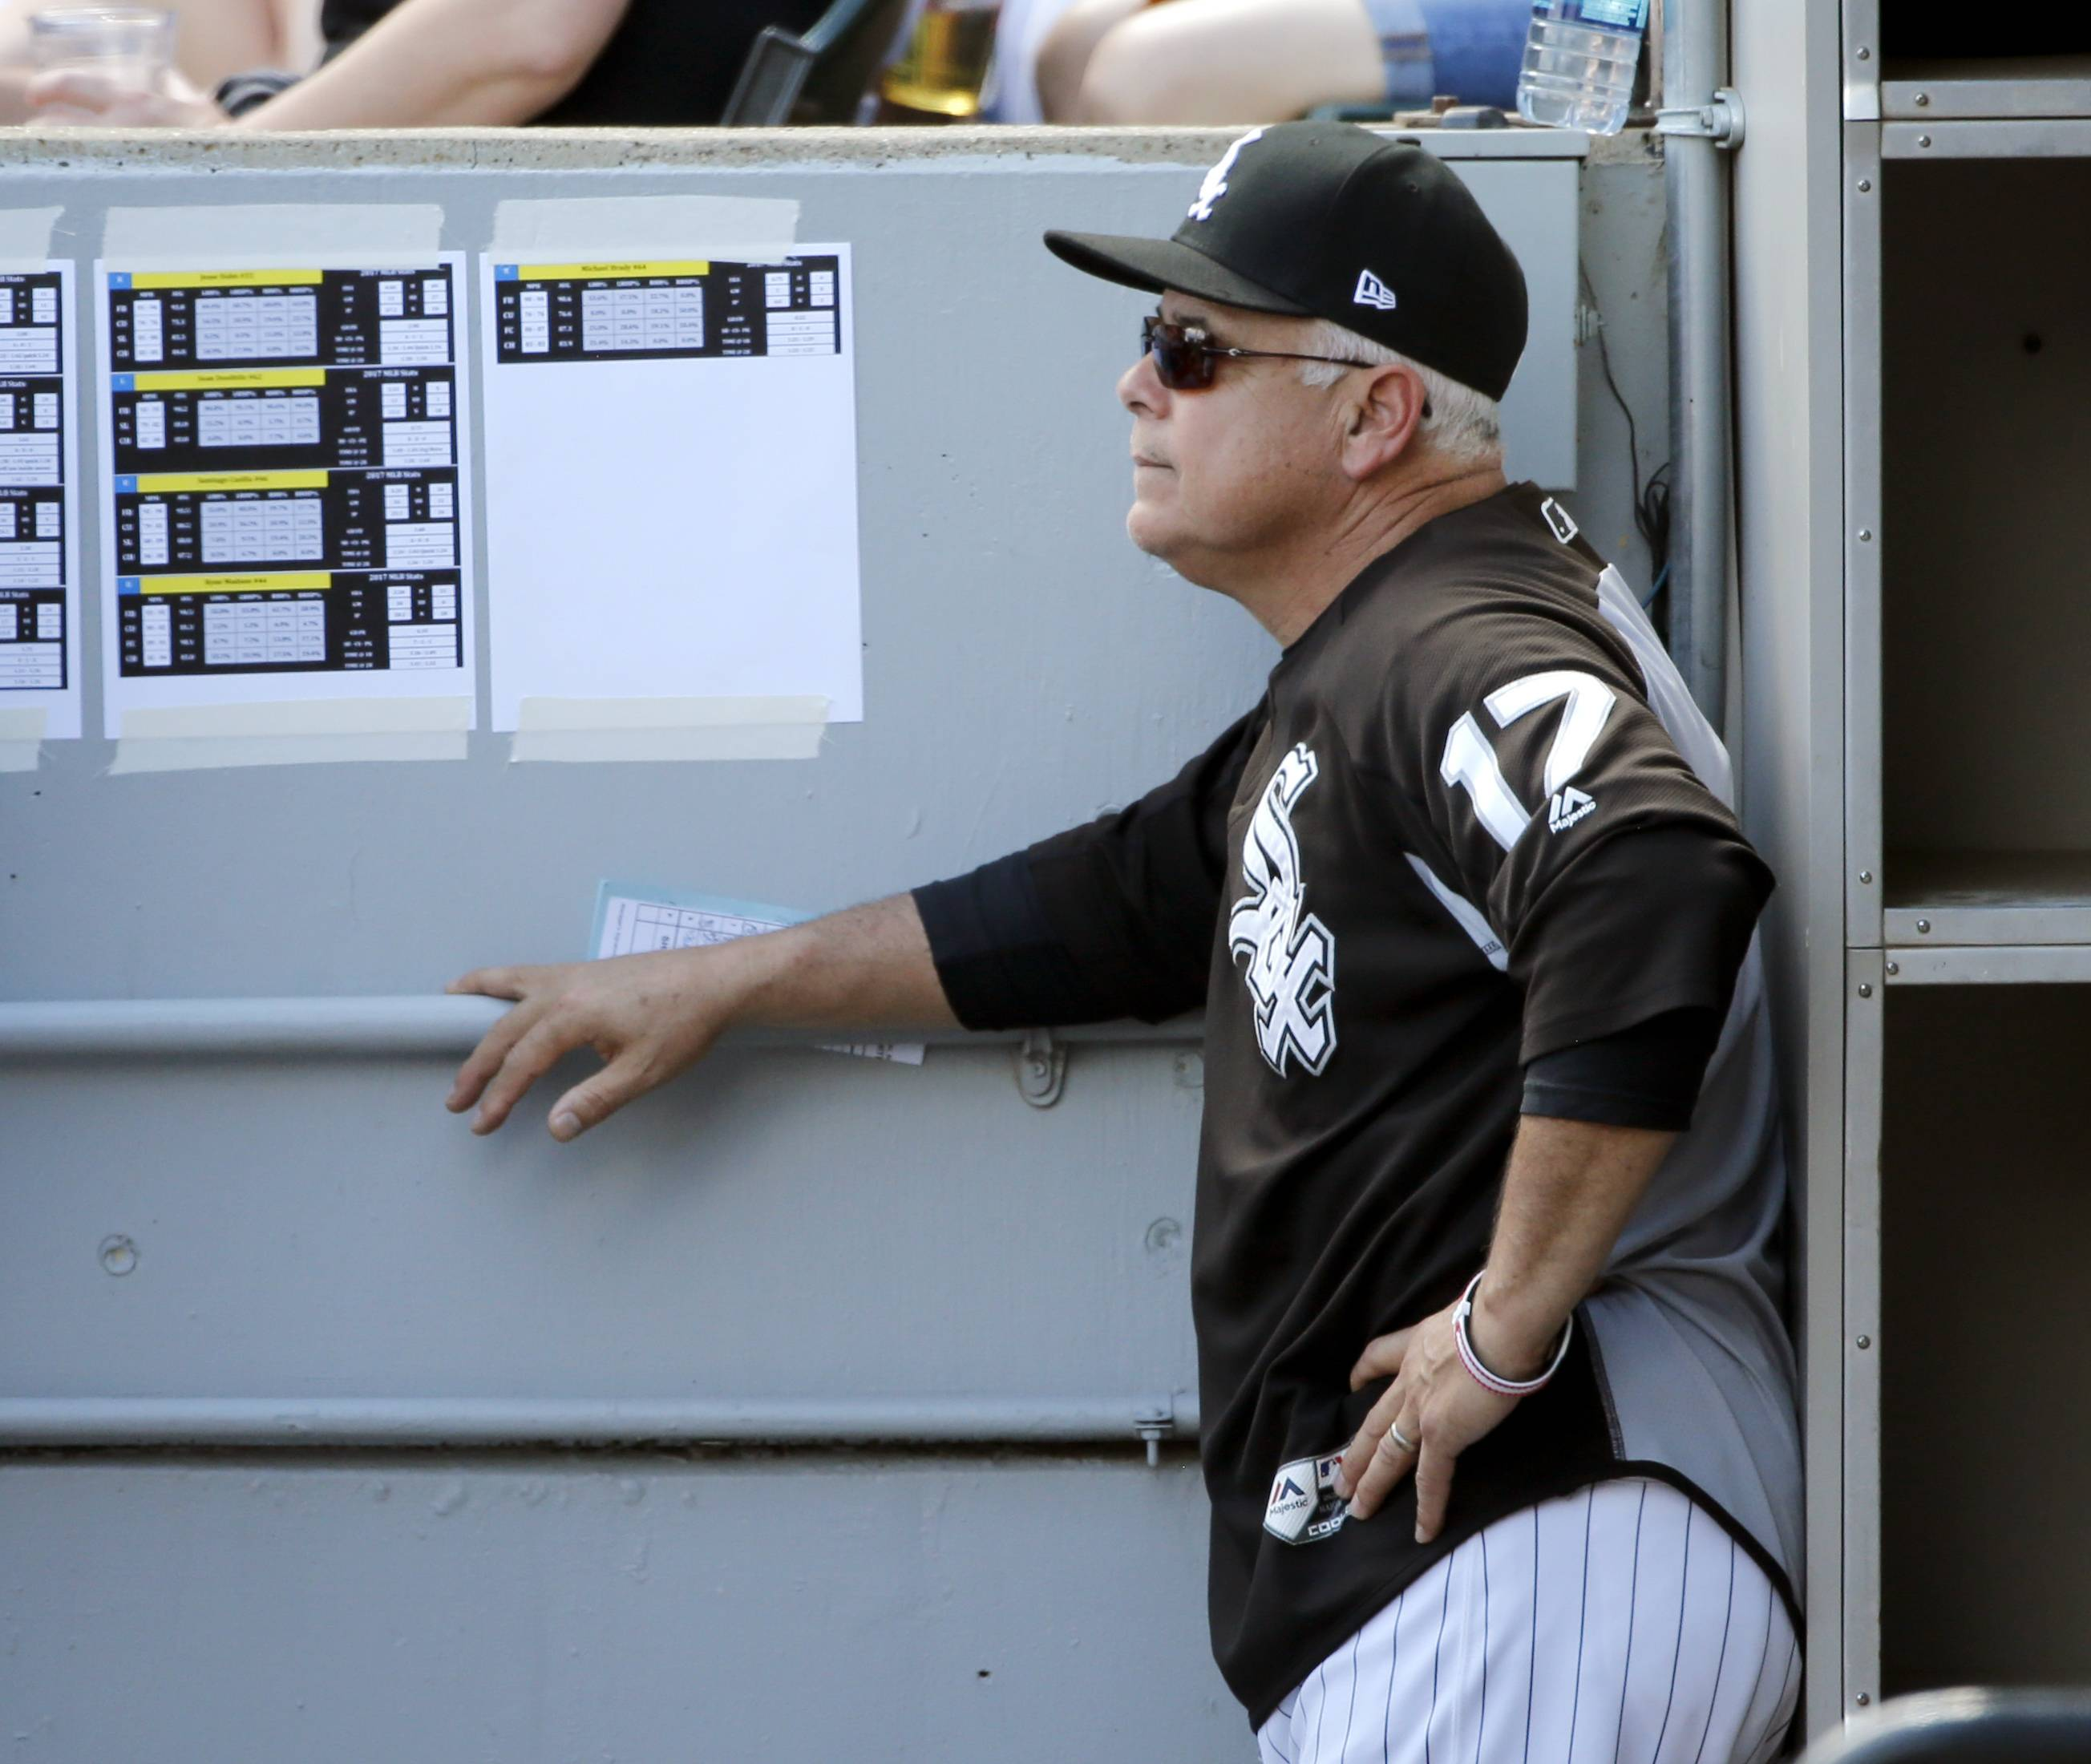 James Shields gave up the first career home runs to three different players, and manager Rick Renteria and third baseman Todd Frazier were both ejected Saturday in the Chicago White Sox's 10-2 loss to the Oakland A's.